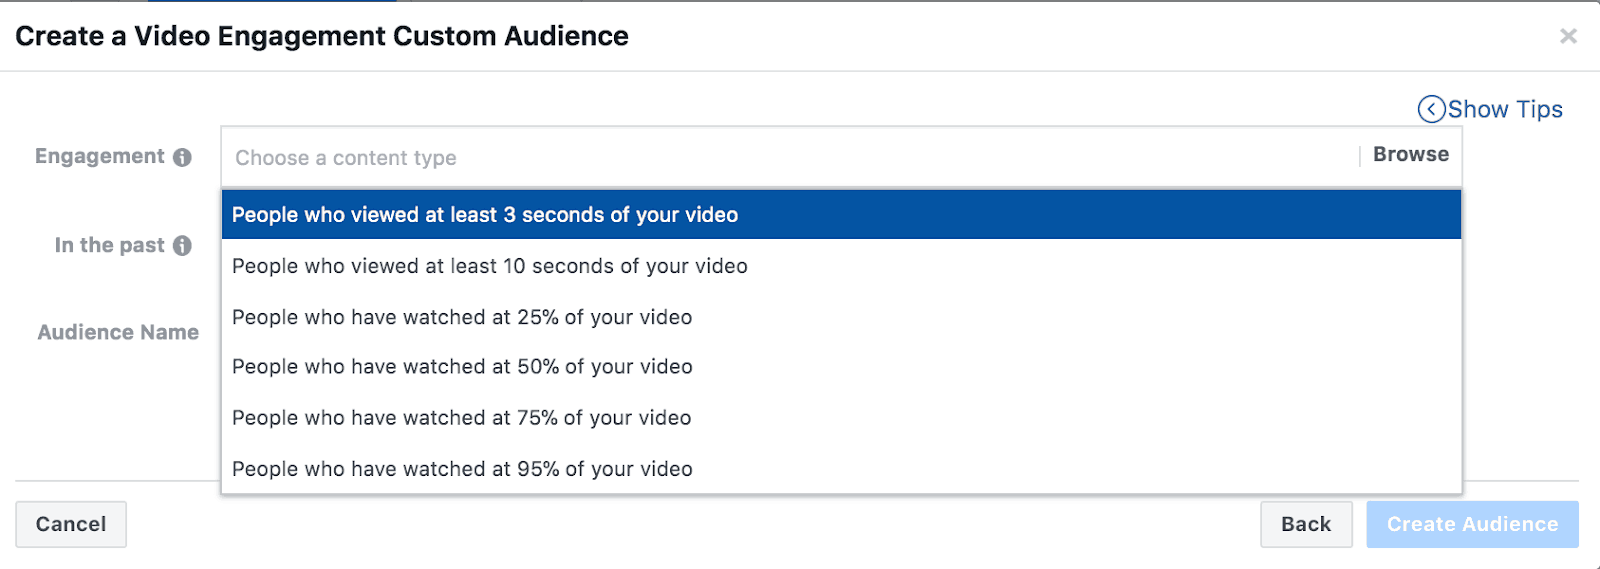 Screenshot showing how to create a video engagement custom audience in Facebook.